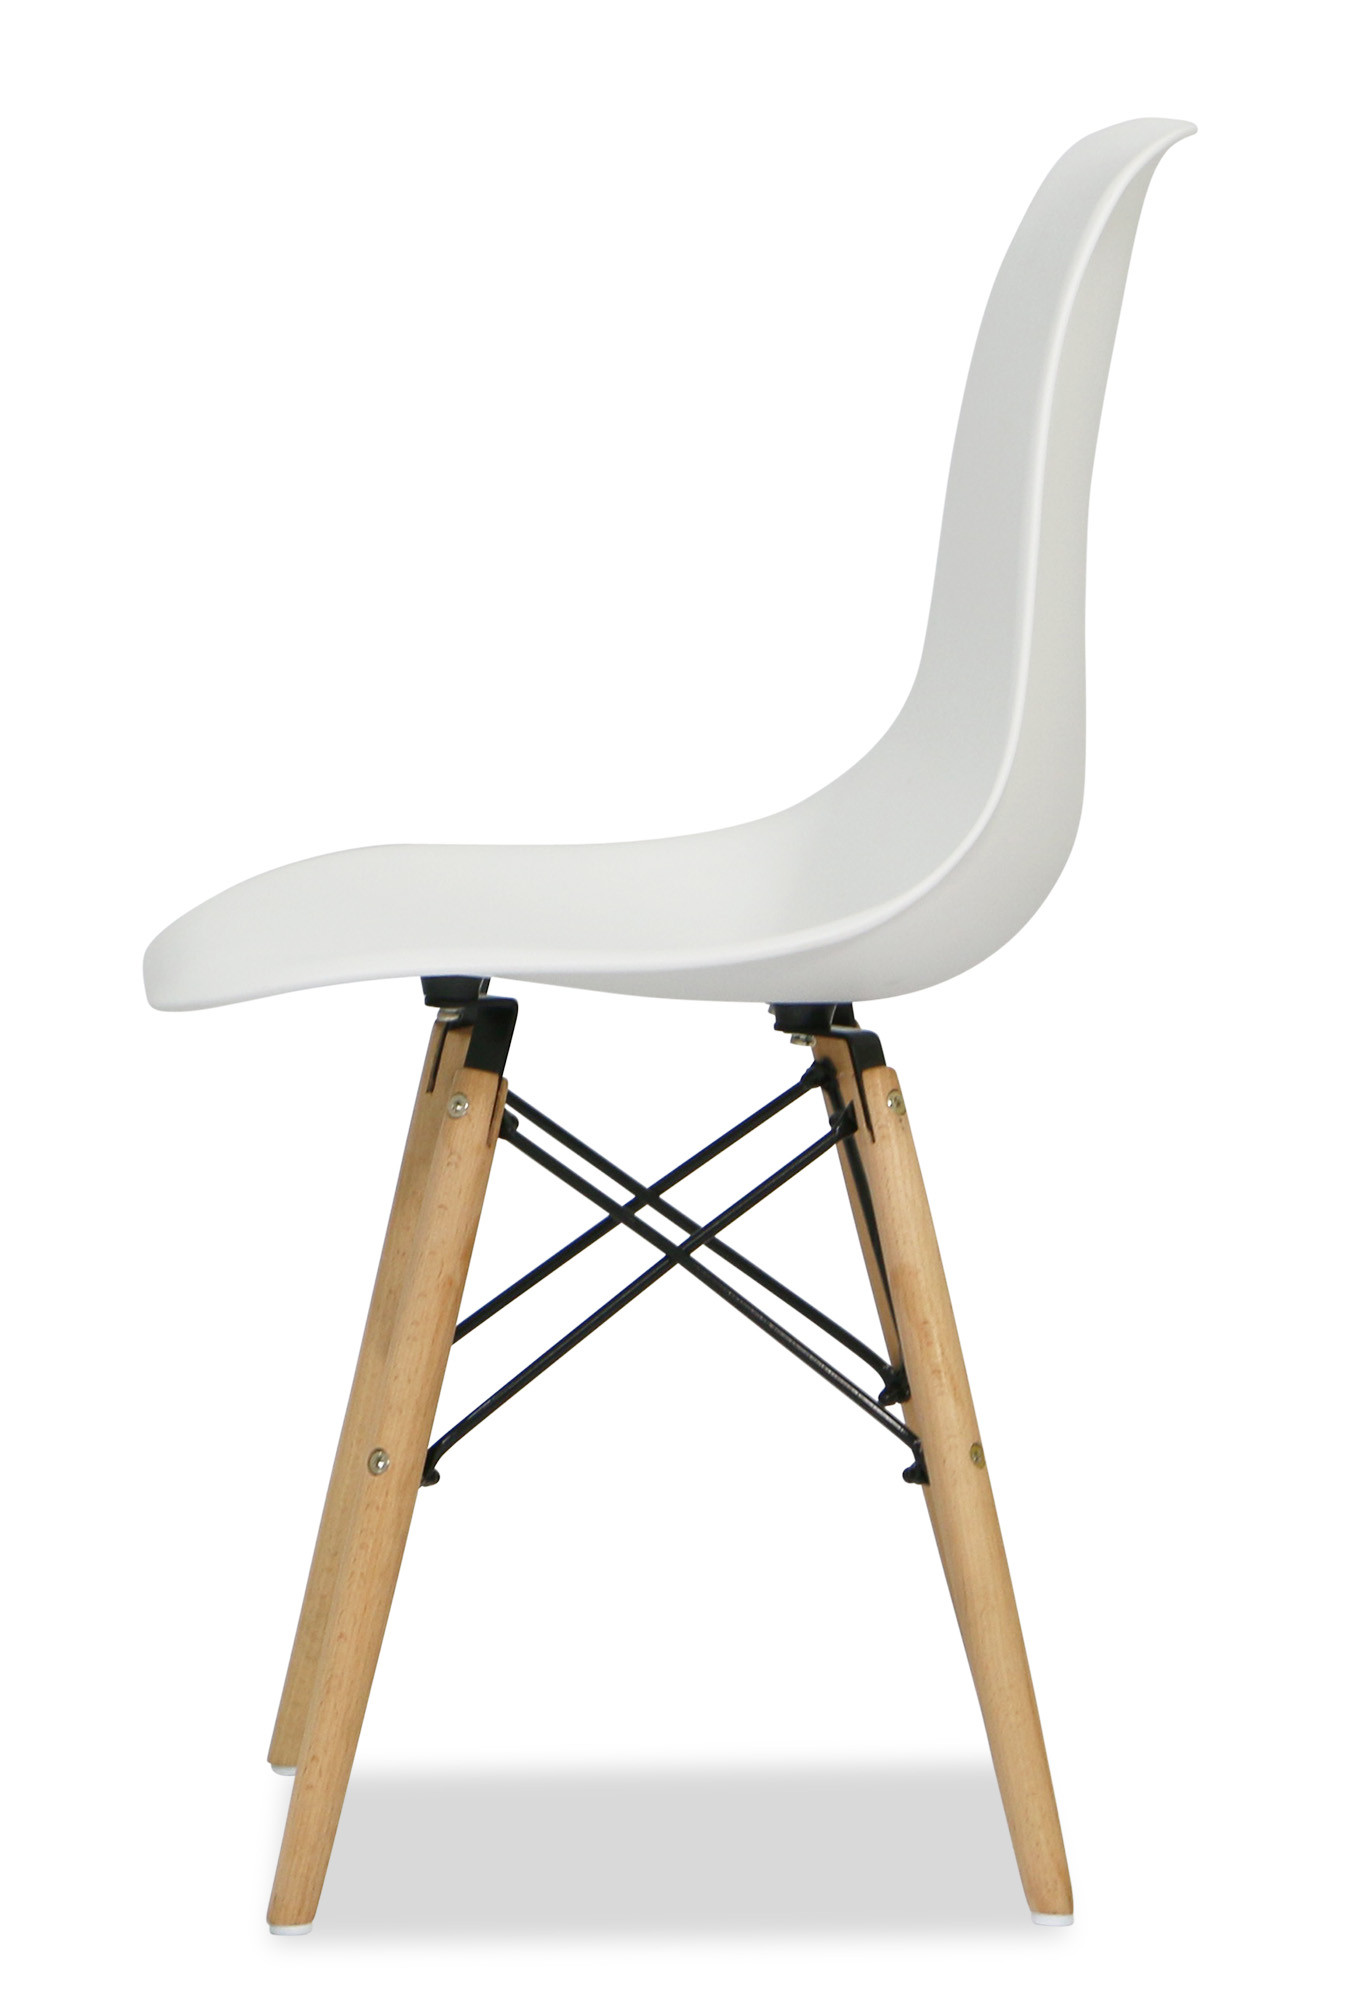 Designer stools singapore danish design co designer for Designer furniture replica malaysia